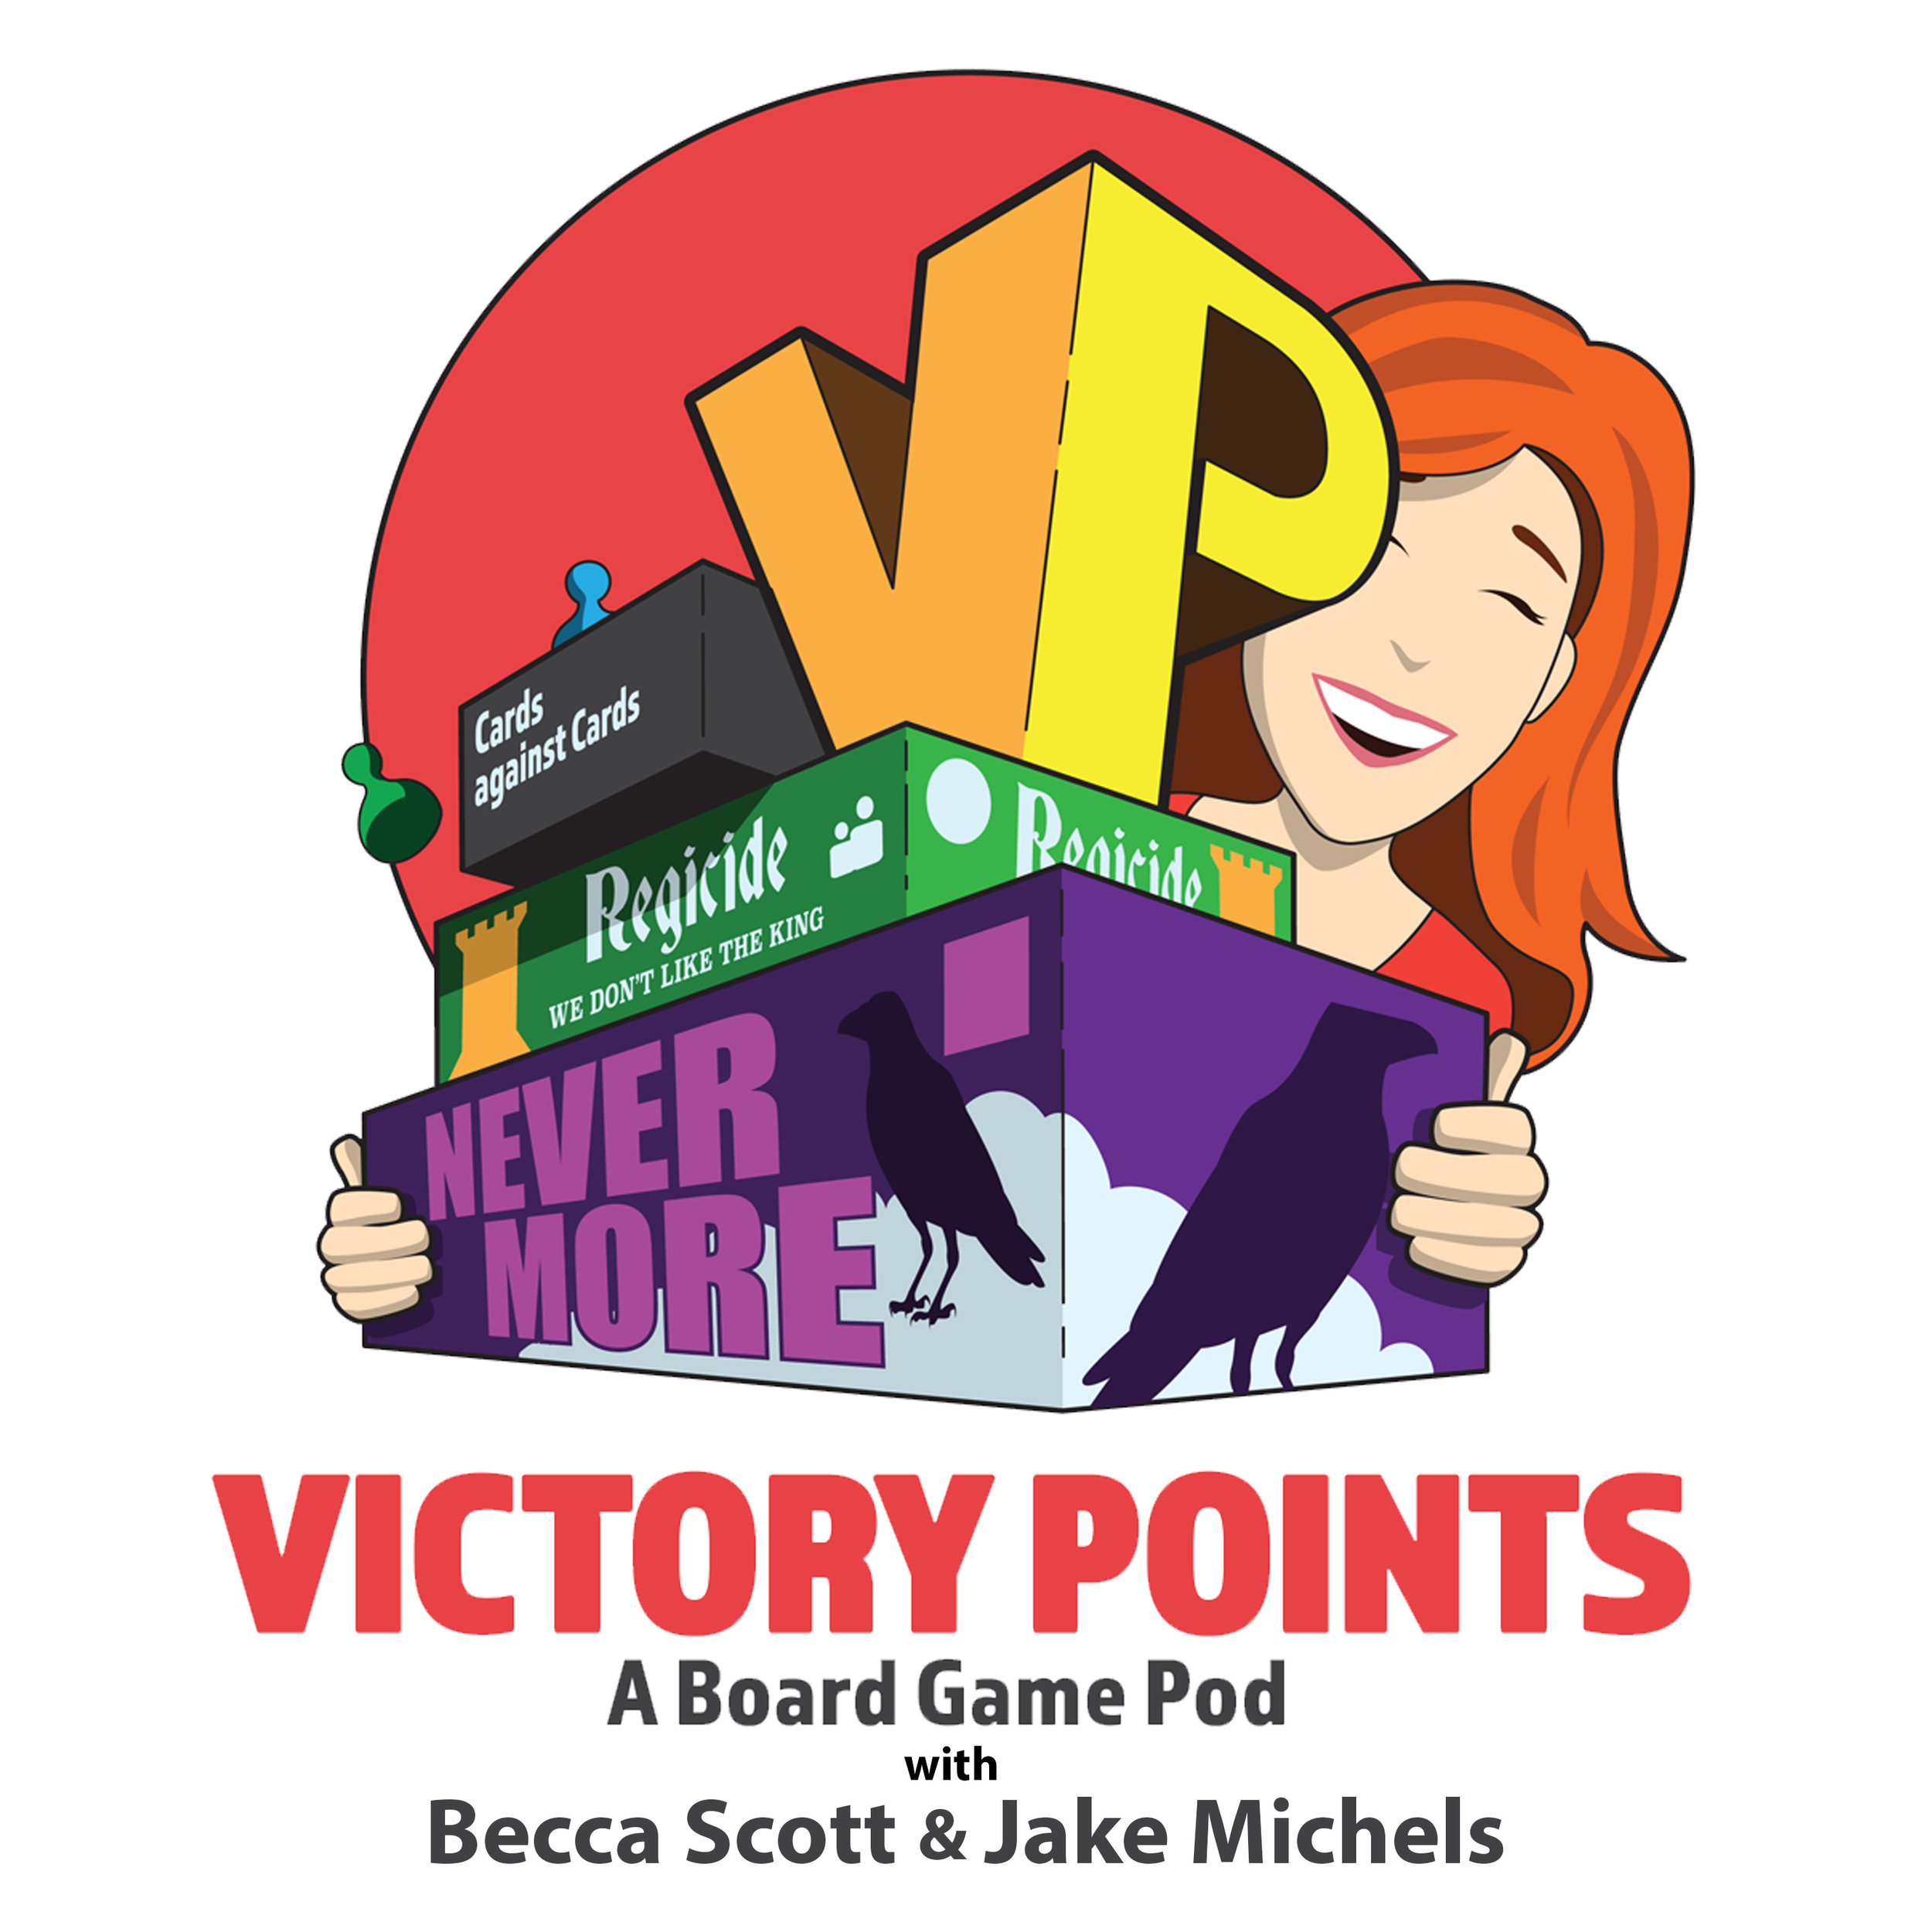 Victory Points - A Board Game Pod with Becca Scott and Jake Michels